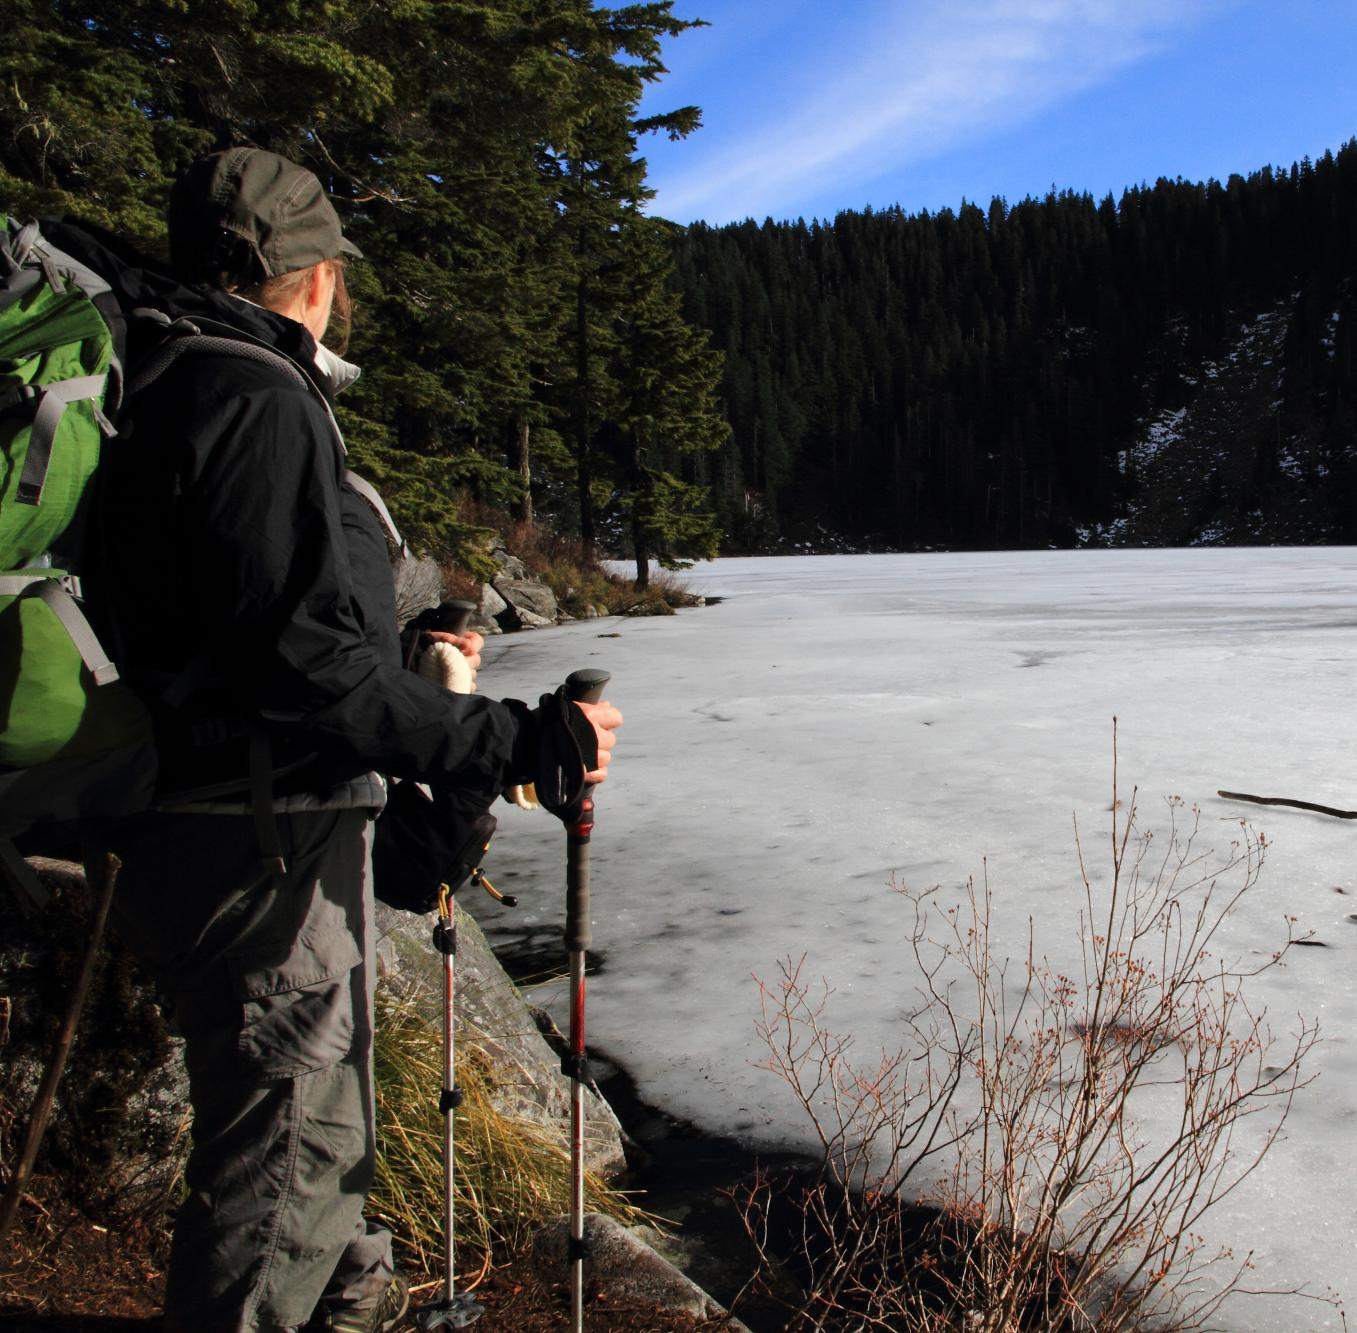 Female hiker with green backpack and trekking poles looking at frozen alpine lake